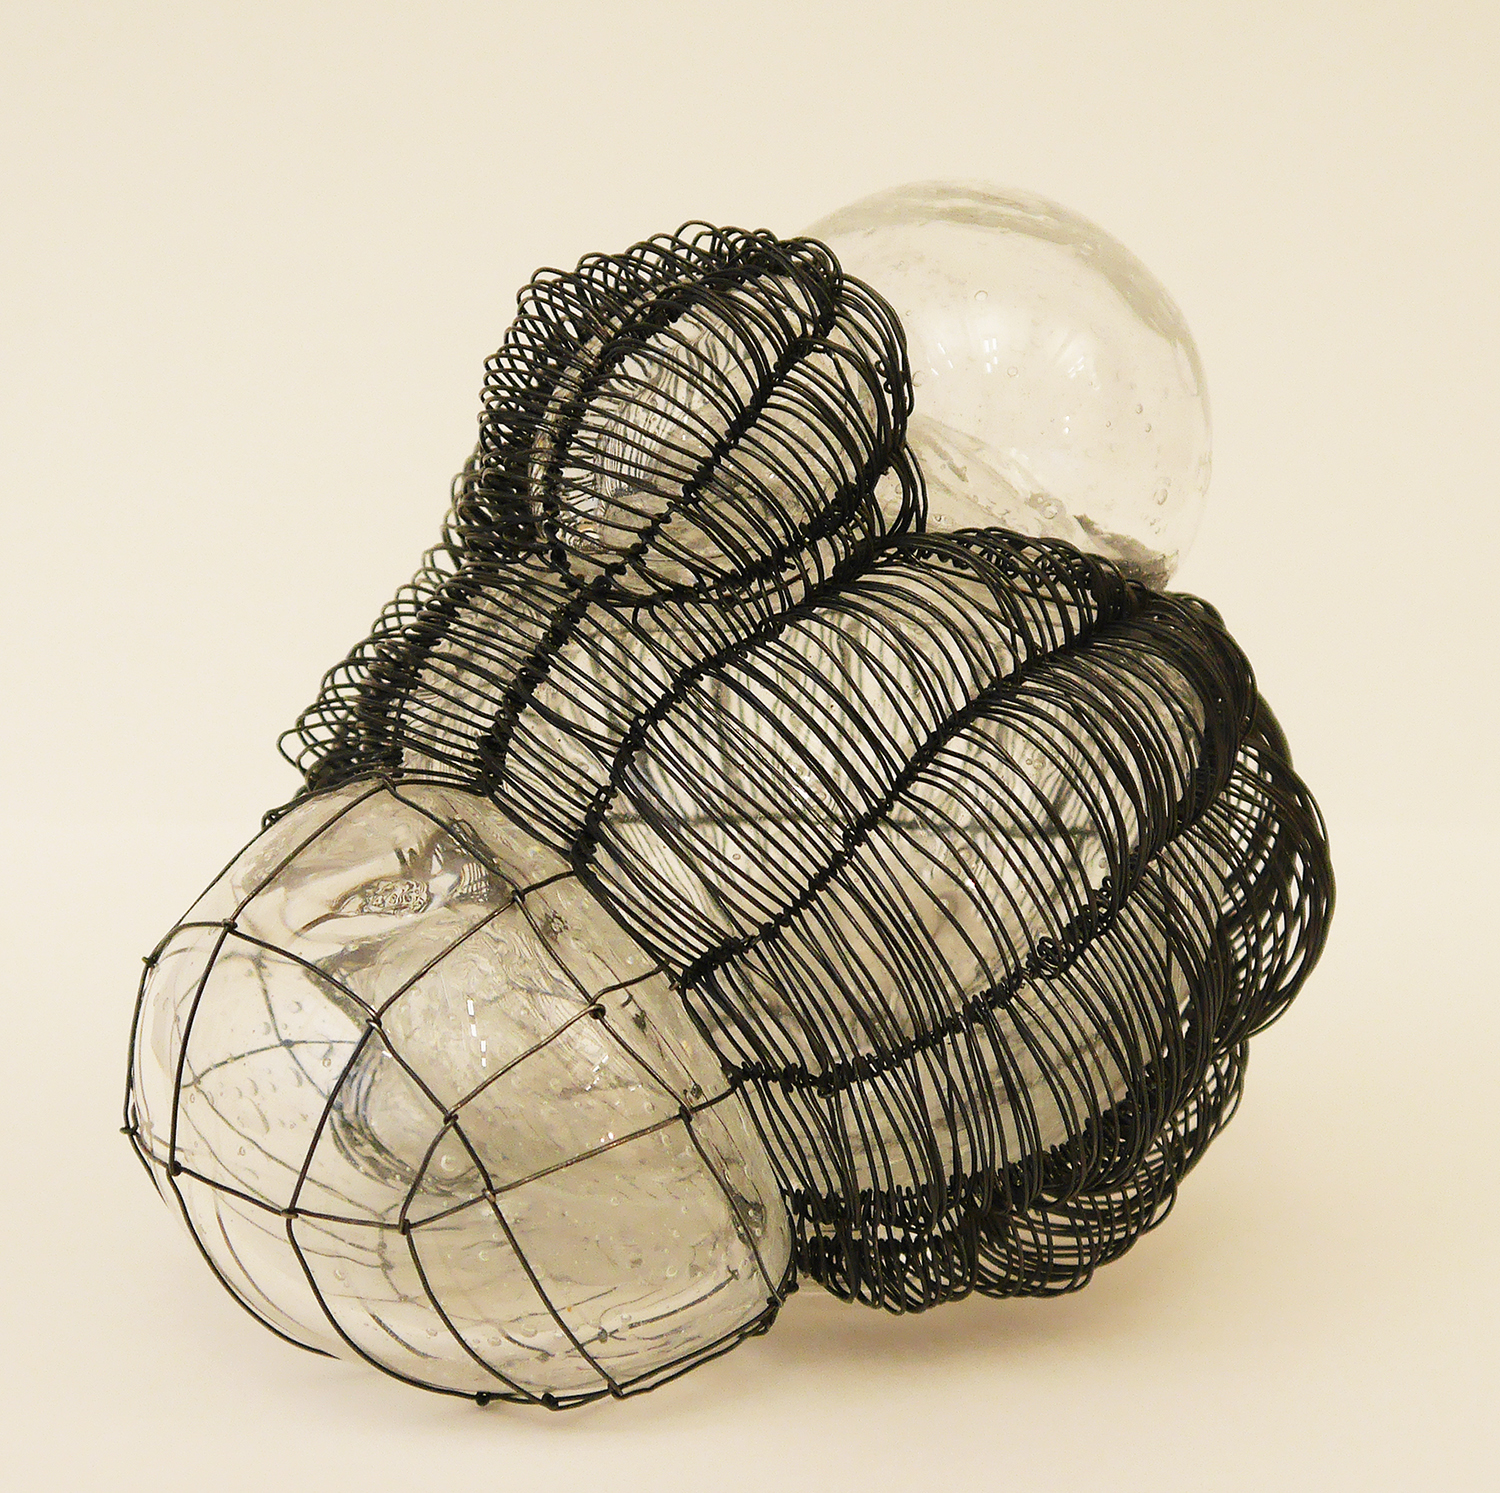 "Caged 5, blown glass with woven steel wire, 5.5""x7""x5"", 2016"